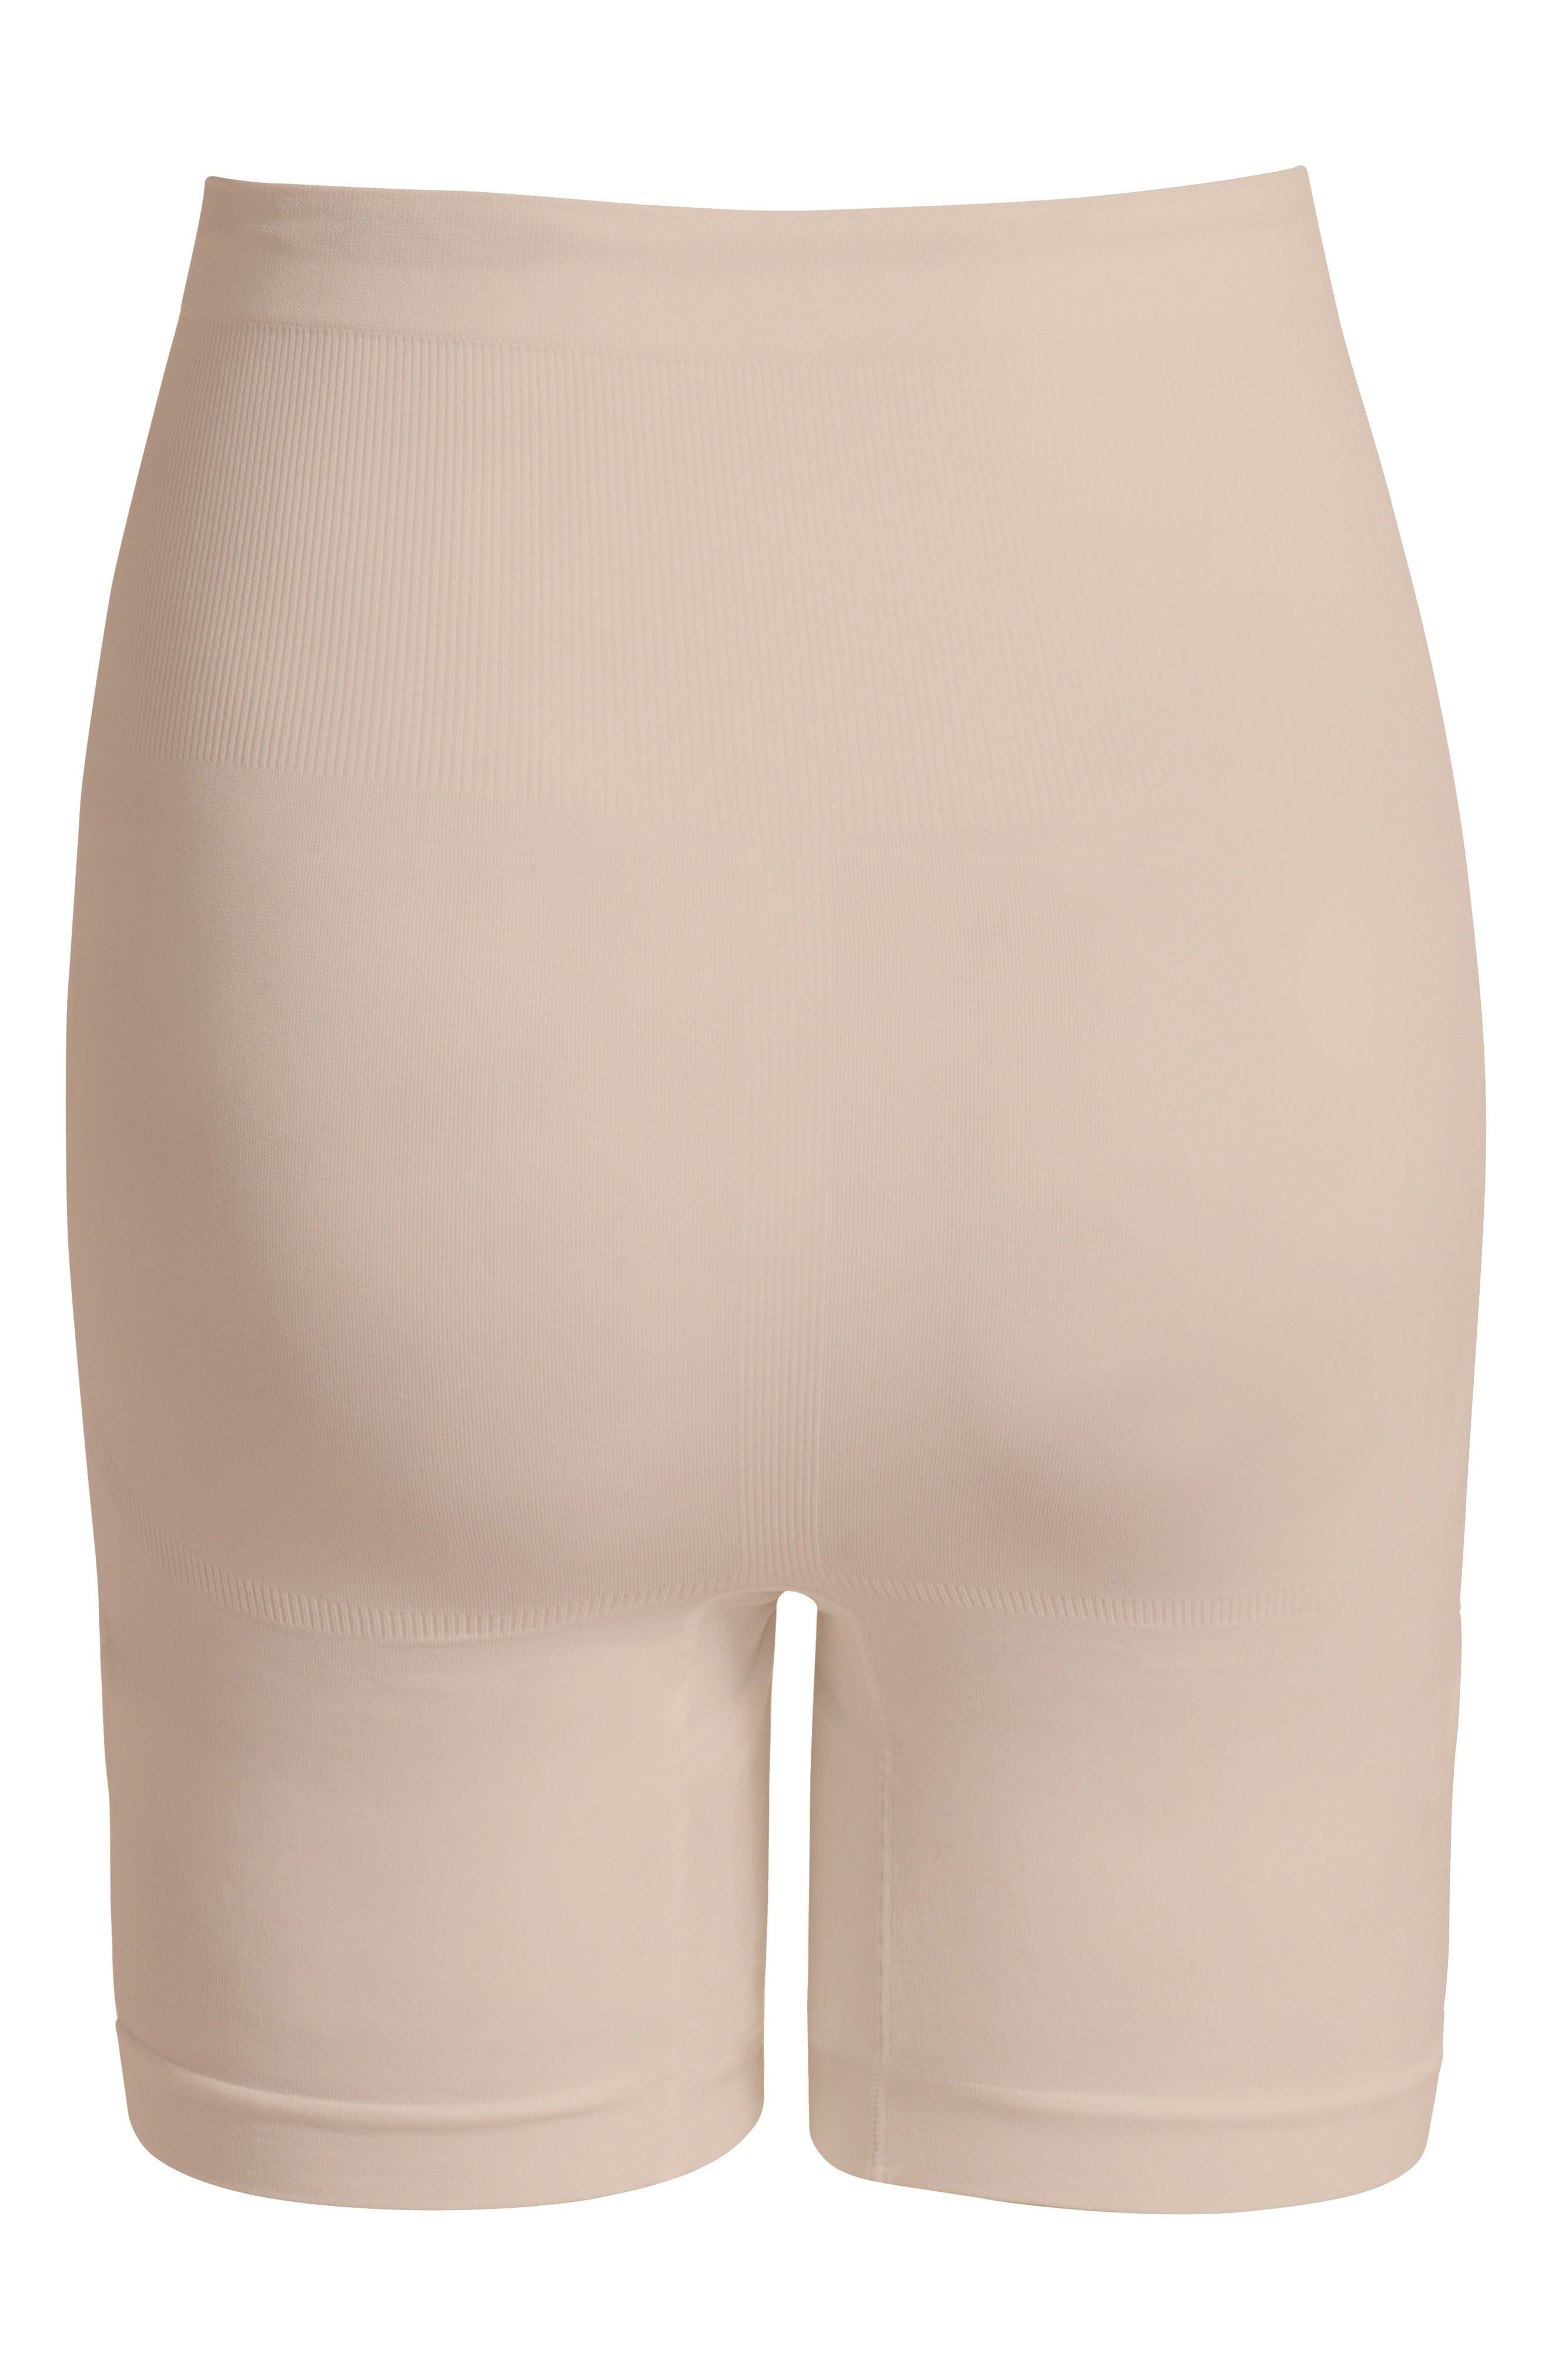 Seamless Maternity Shorts,                             Alternate thumbnail 2, color,                             Natural